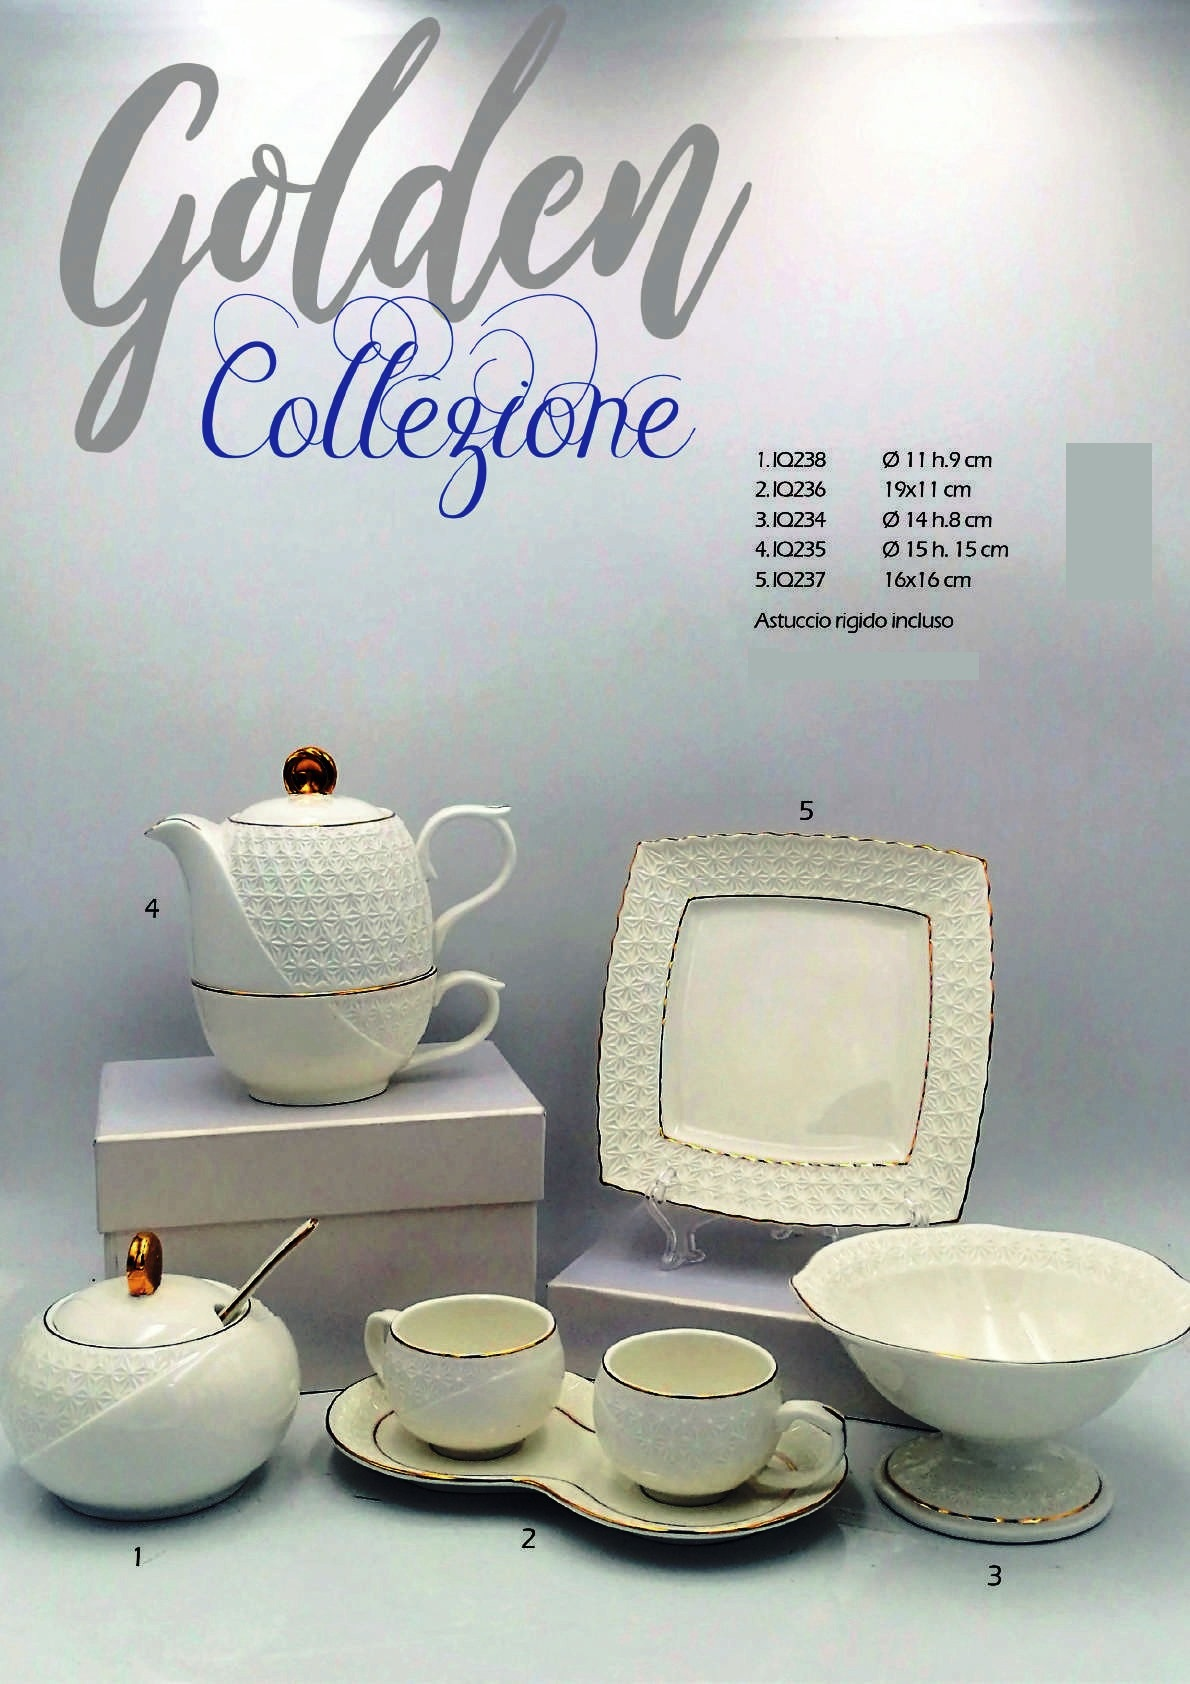 Collezione Golden by Ilary Queen